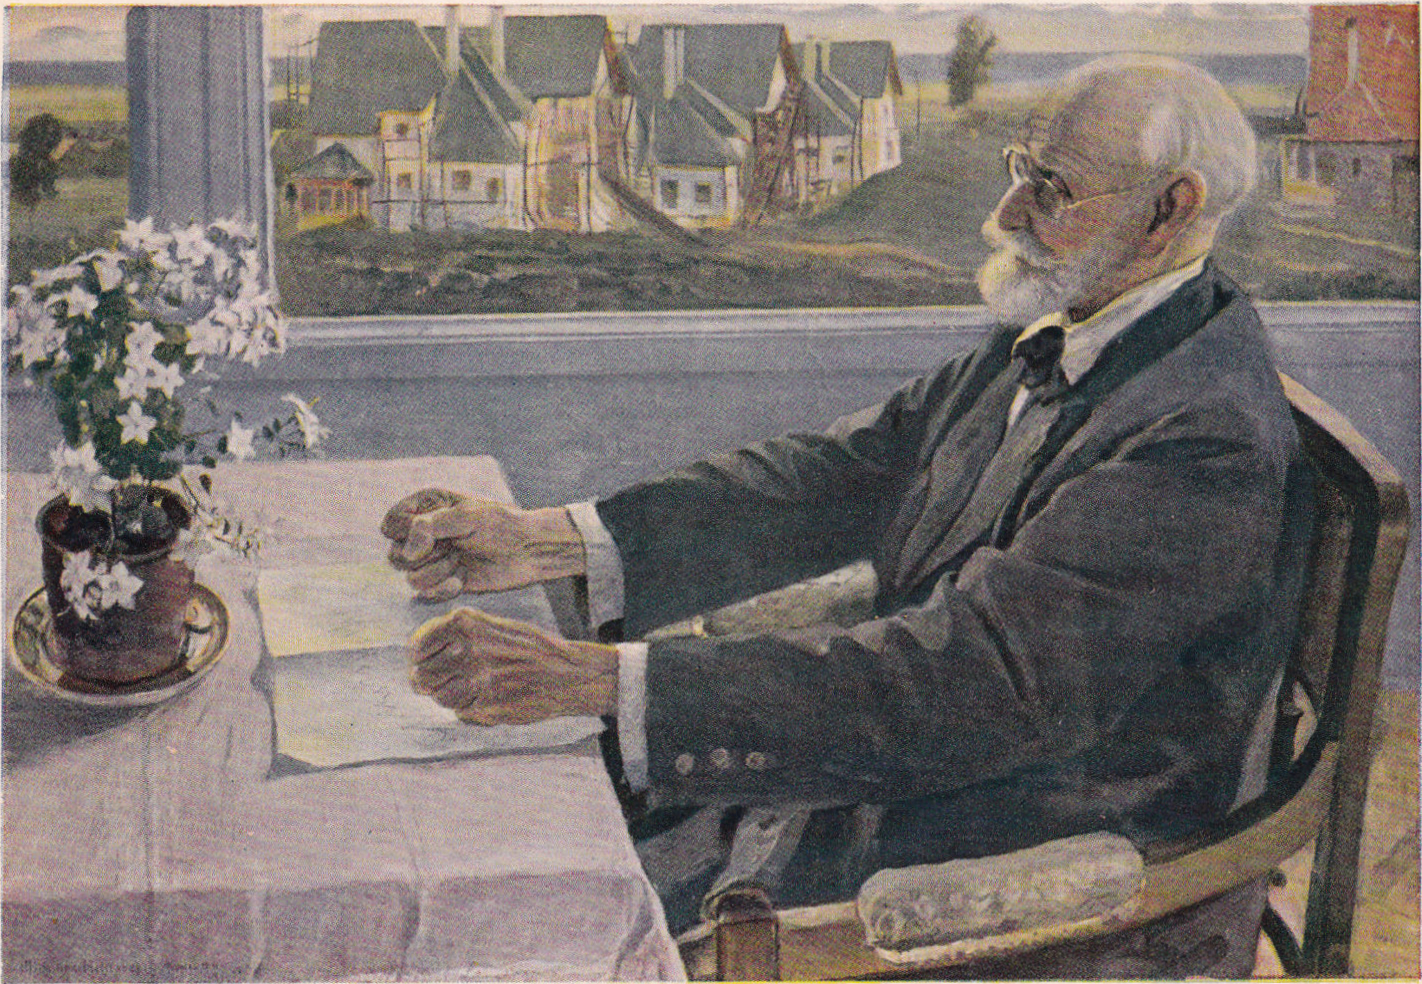 the life and times of ivan petrovich pavlov Remember that science demands from a man all his life  ivan petrovich pavlov  was born in the small town of ryazan, russia on september 14th, 1849 to a.